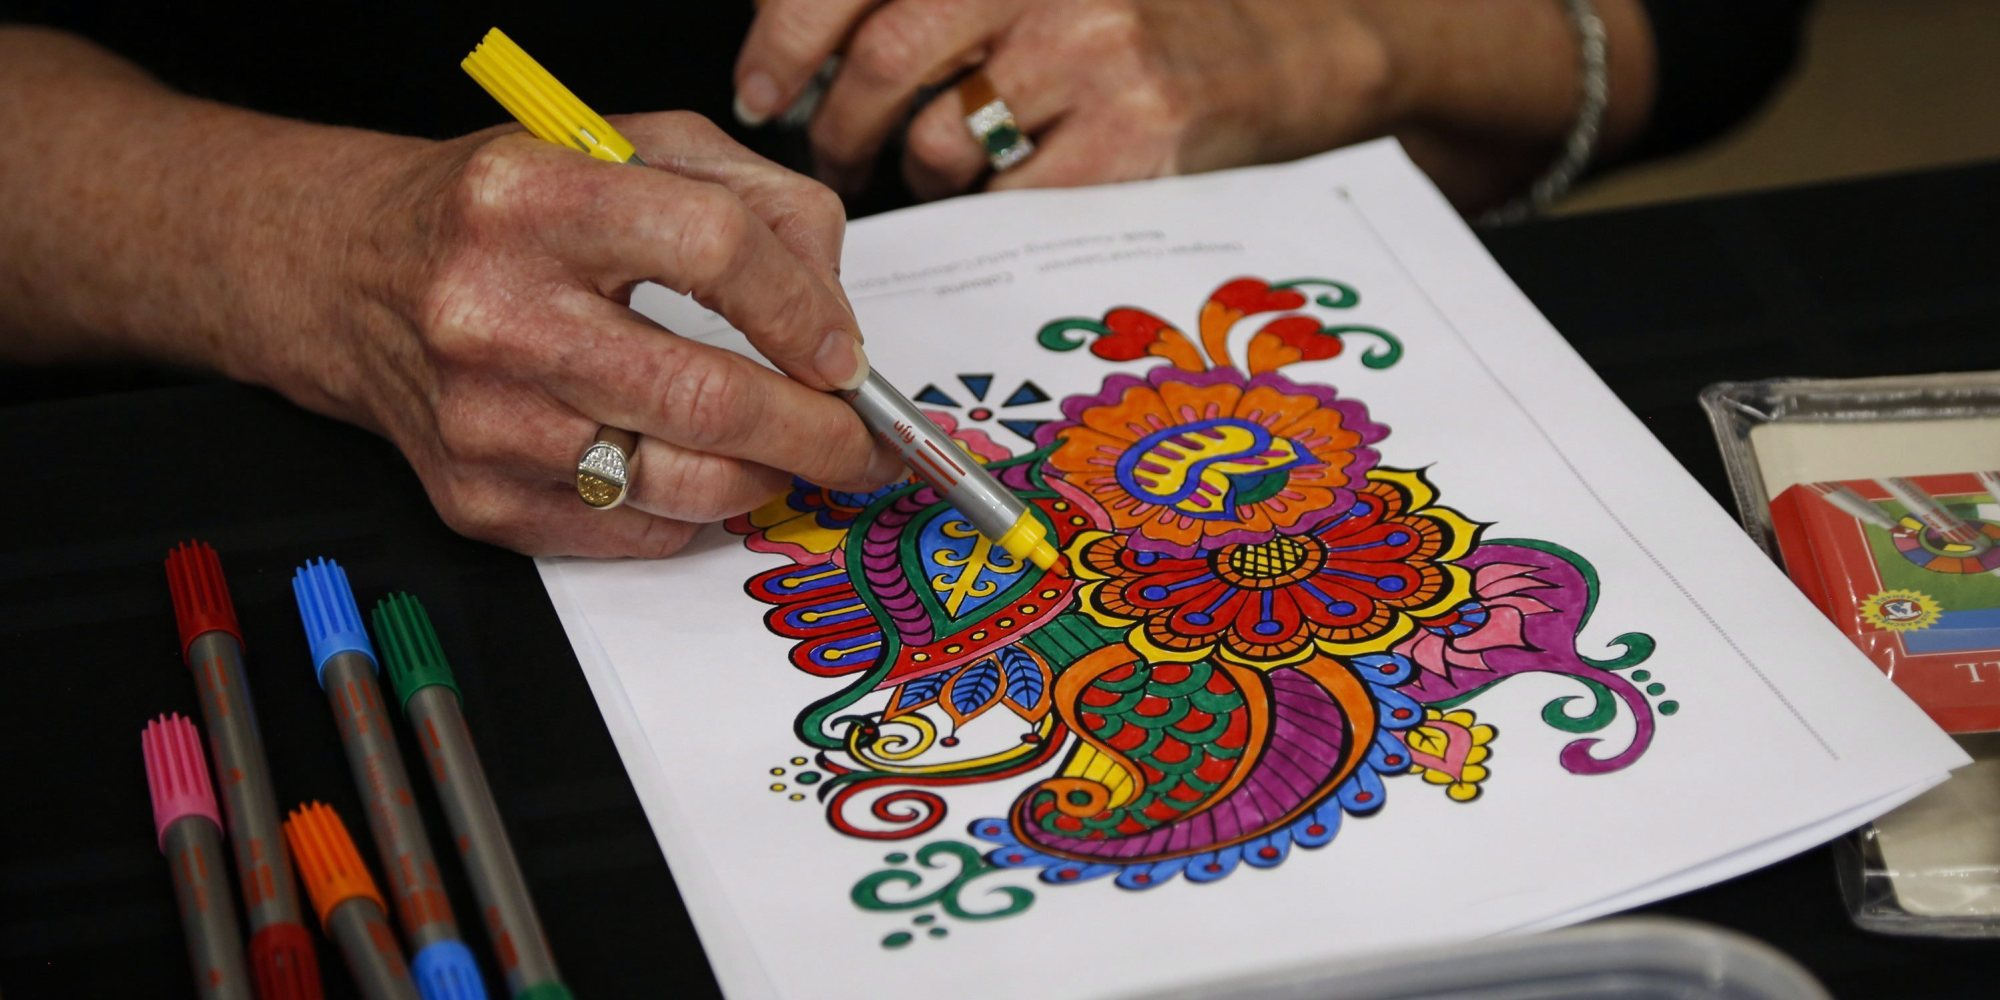 Adult Coloring Its Fun Stress Relieving And Calming